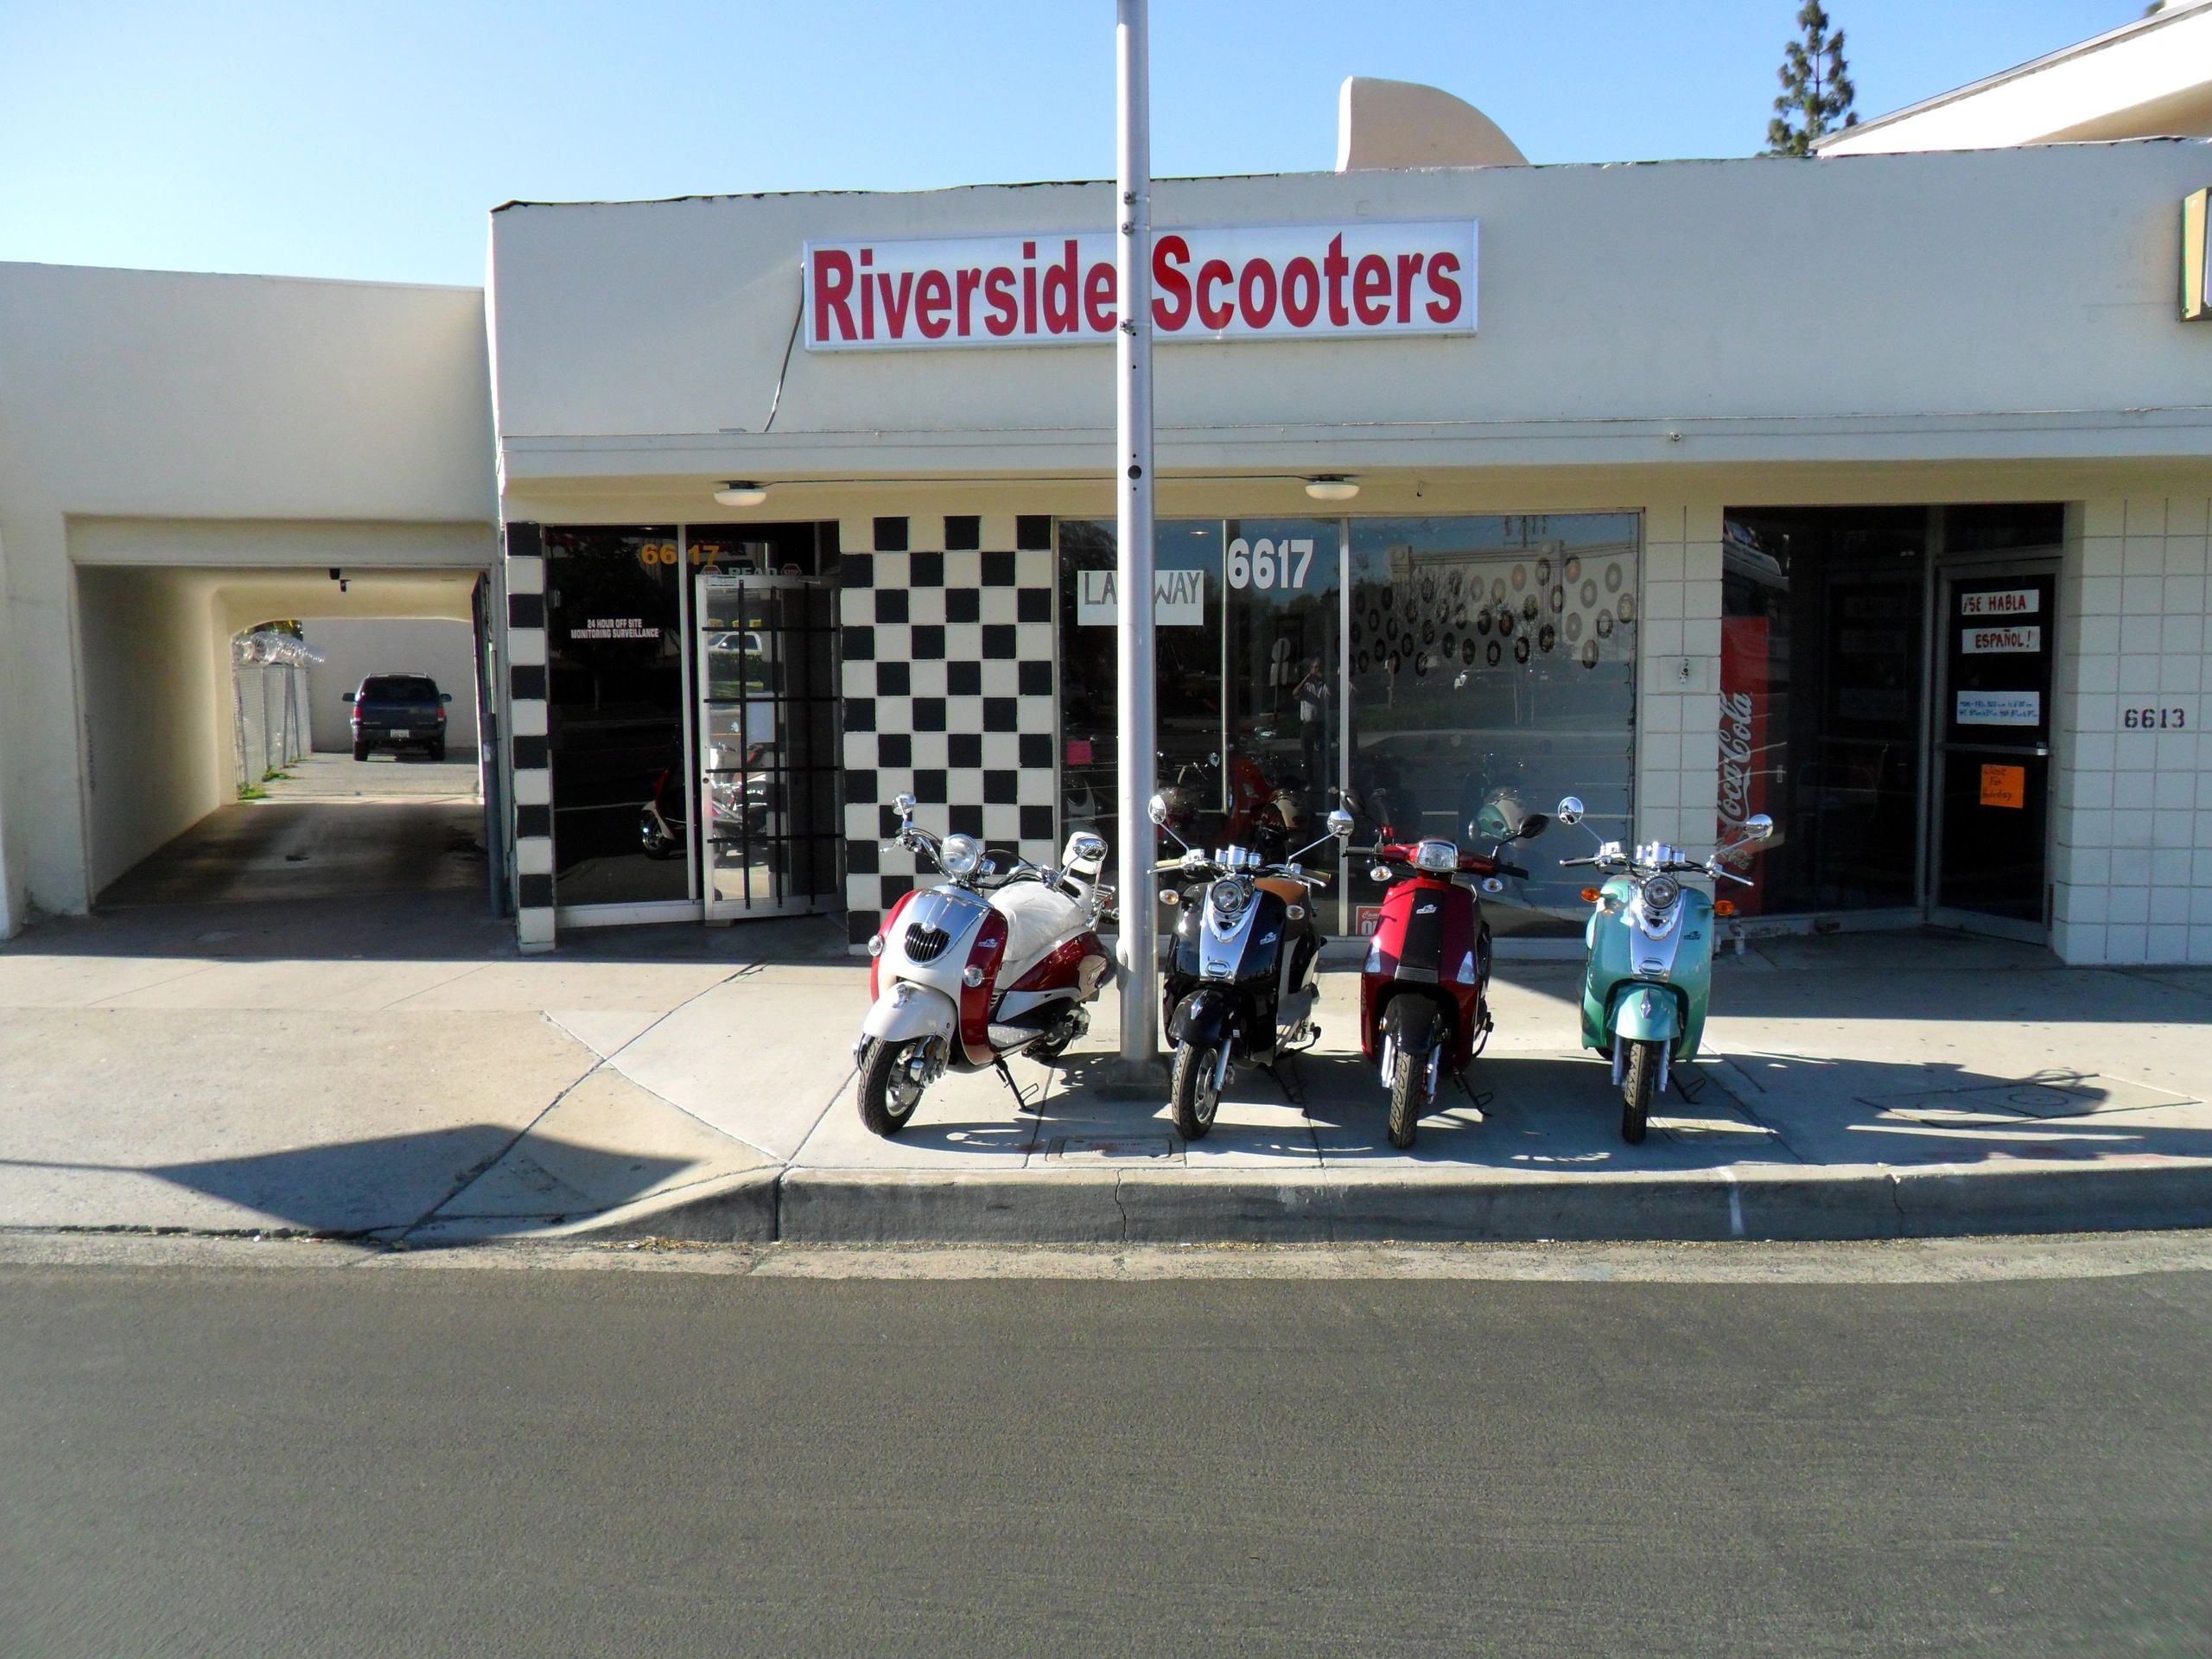 Riverside Scooters